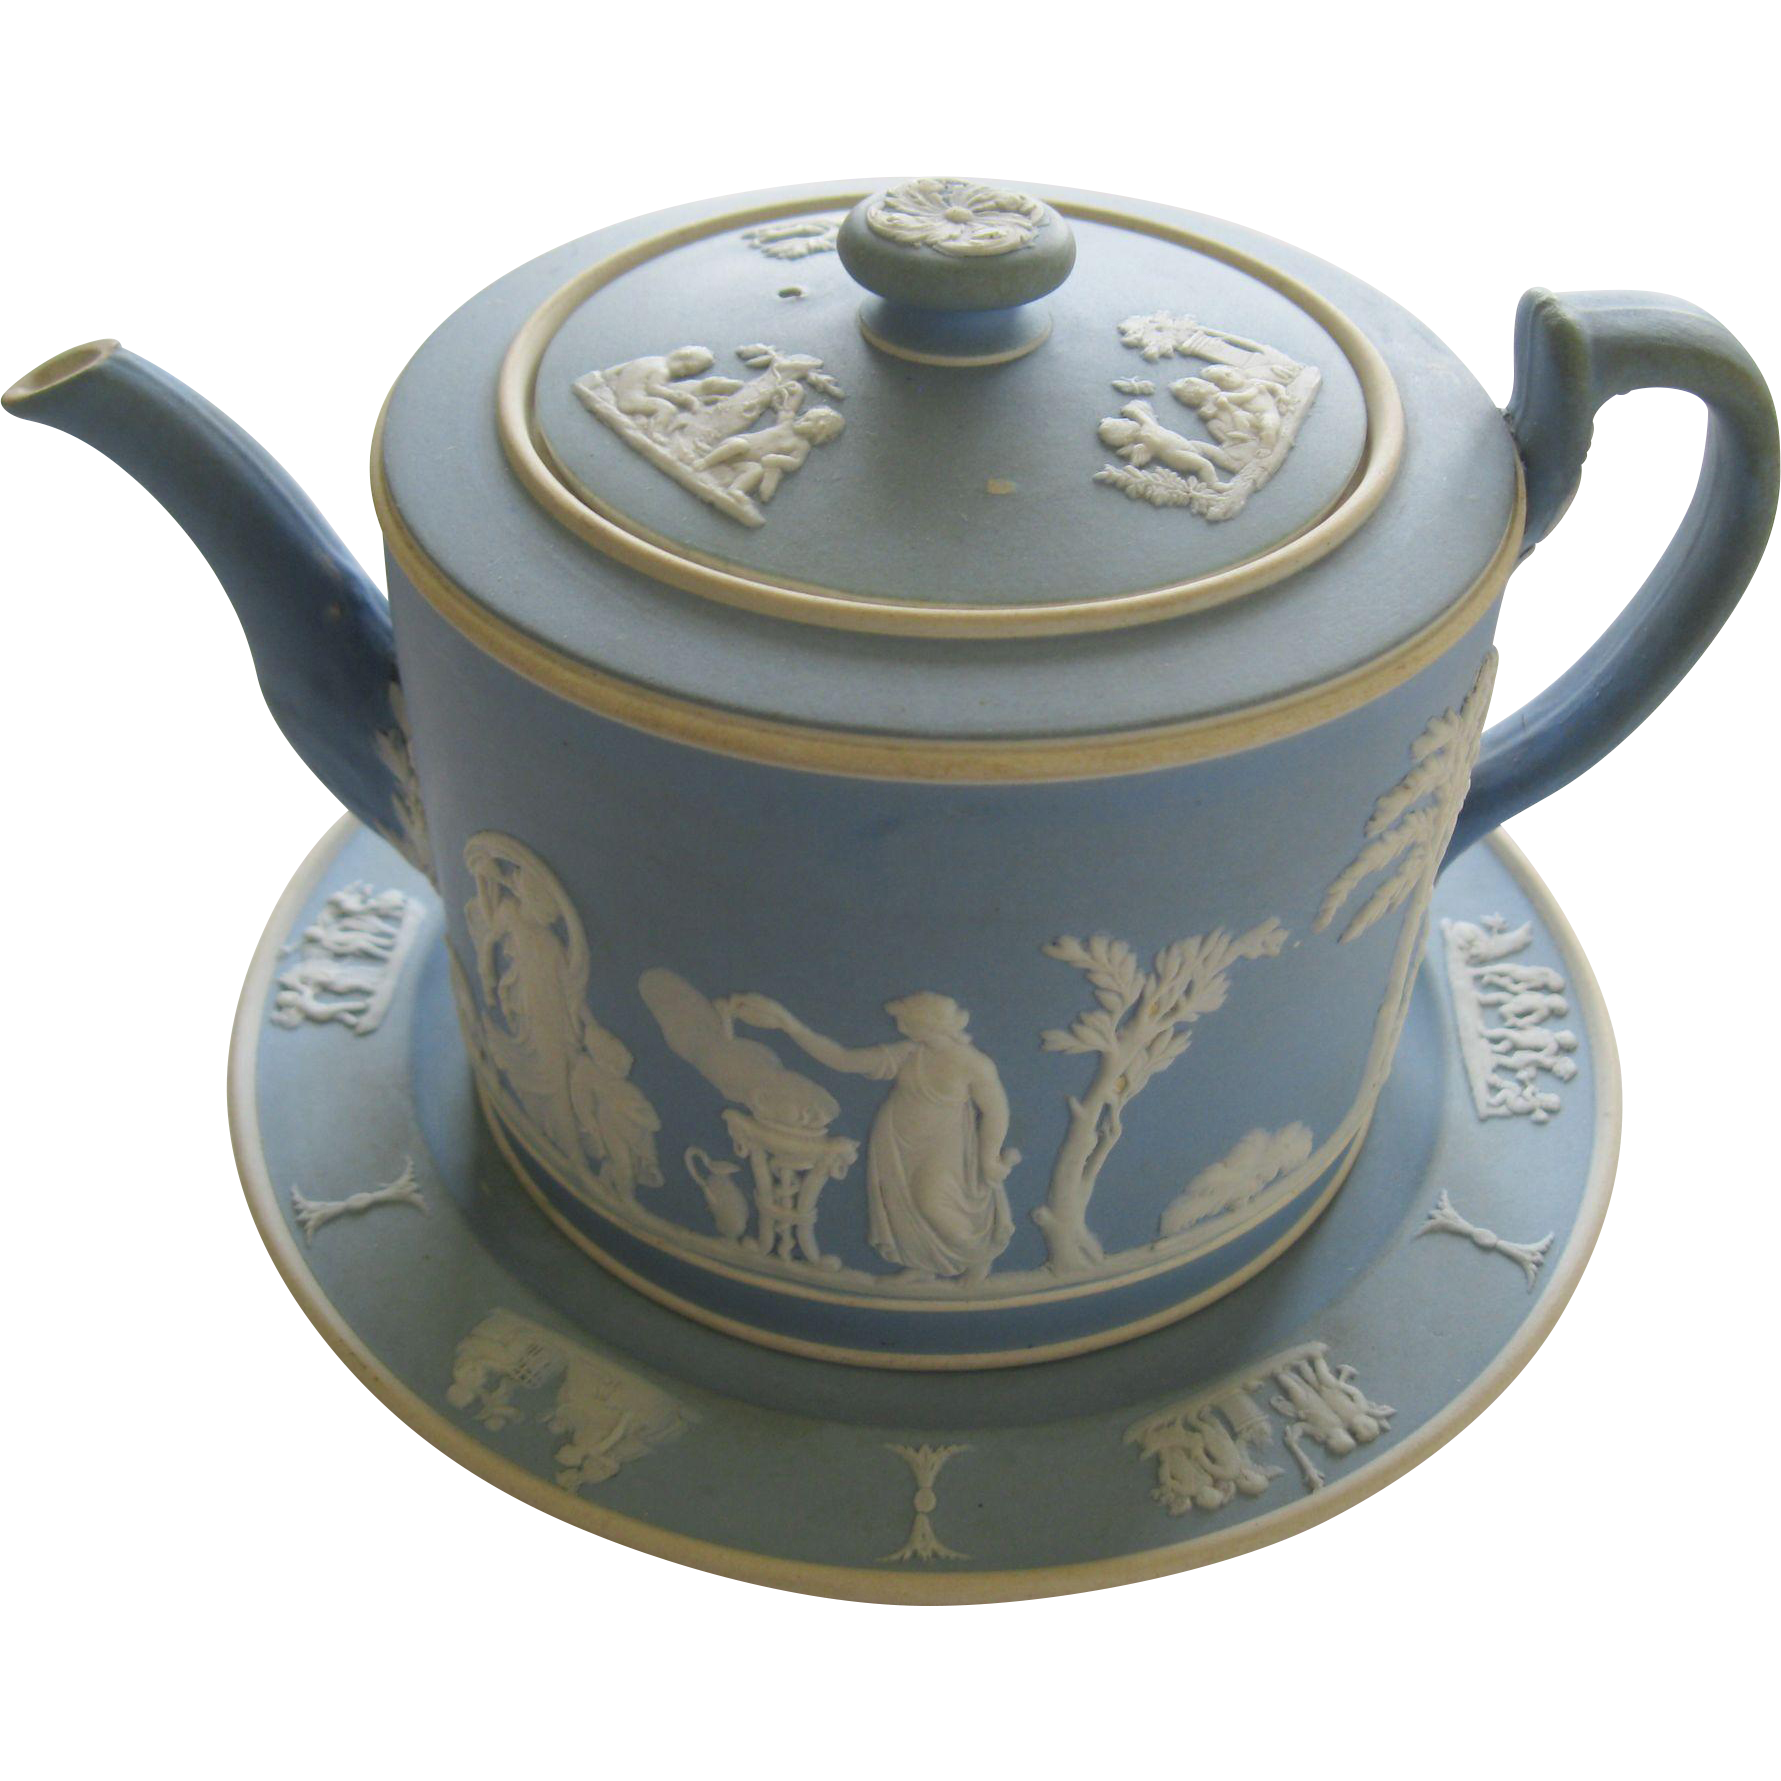 19th Century Wedgwood Jasperware Light Blue Teapot With Underplate This Is The Earliest Marking Of Just W Antique Porcelain Plates Tea Pots Tea Pots Vintage